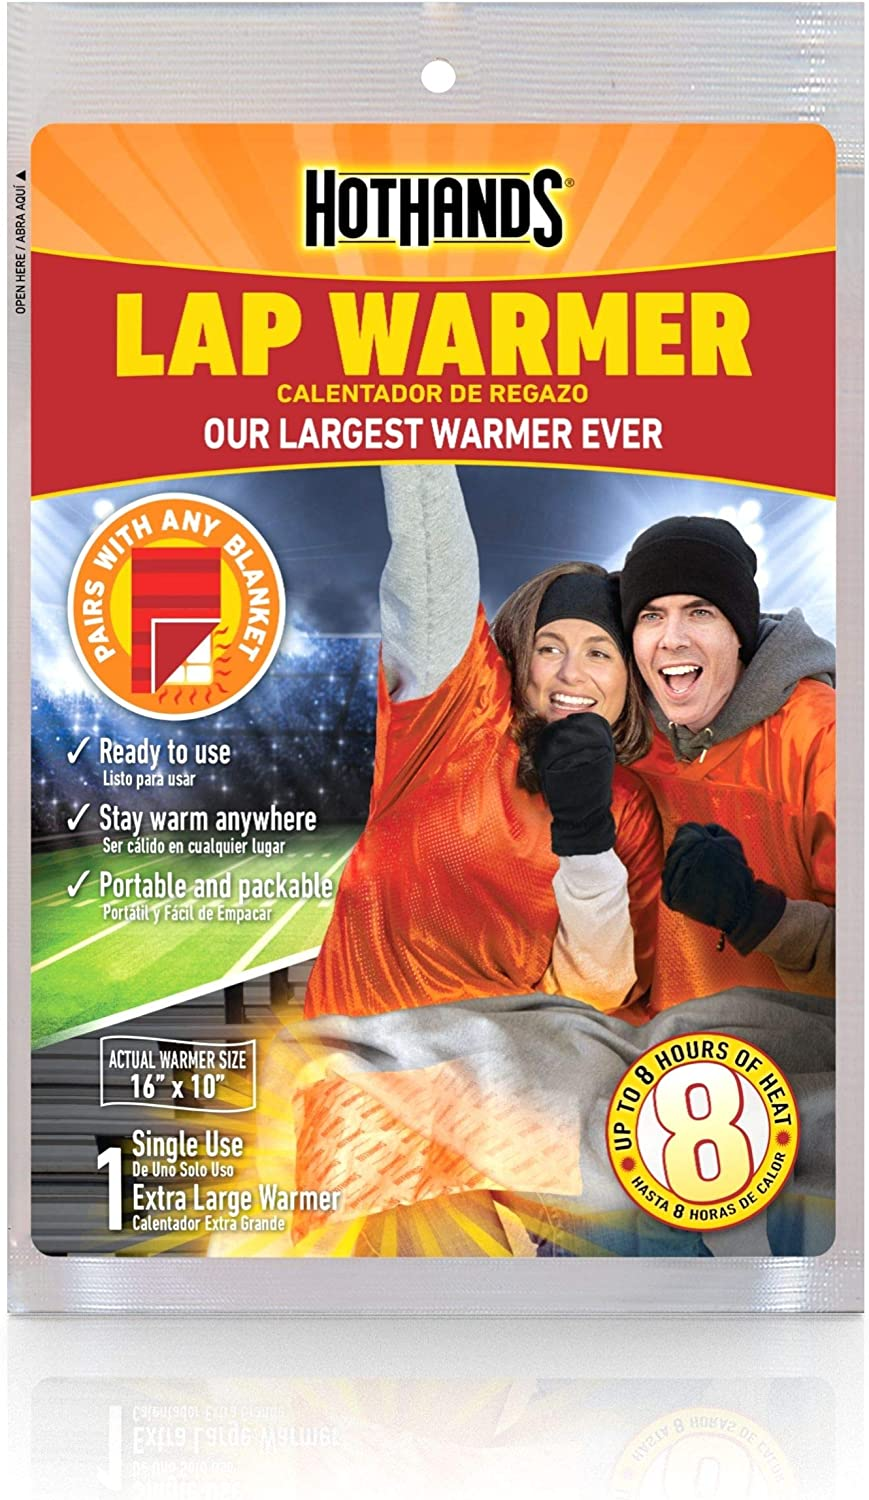 """HotHands Lap Warmer, Largest Warmer 16"""" X 10"""" - Up to 8 Hours of Long Lasting Heat - 1 Lap Warmer"""